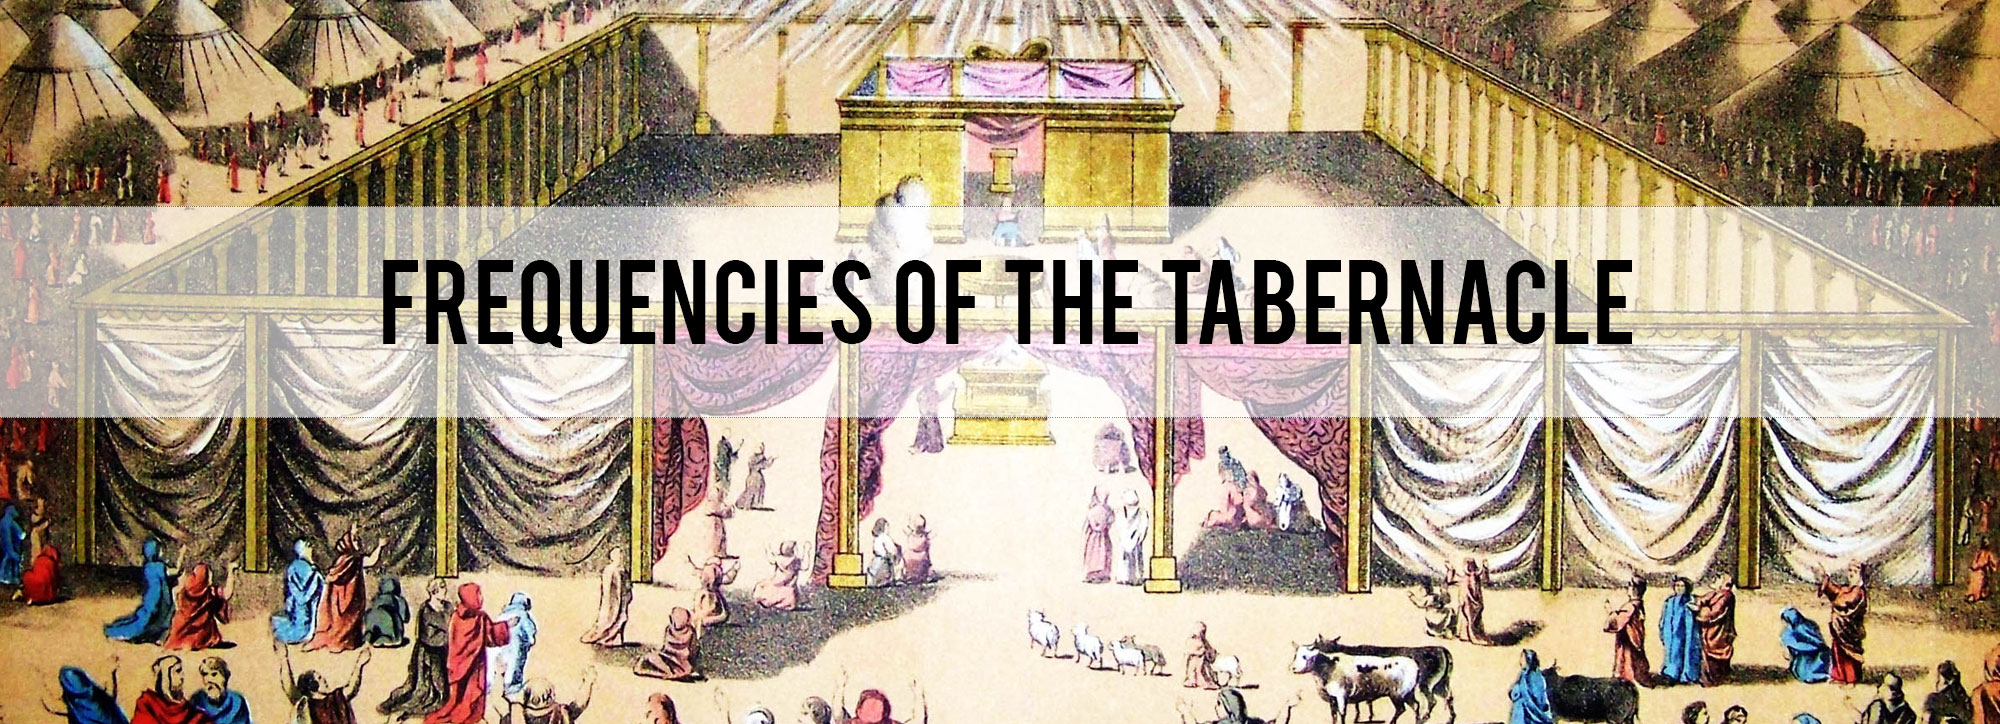 Frequencies of the Tabernacle: a free article published by Steve Rees of Calming Harp